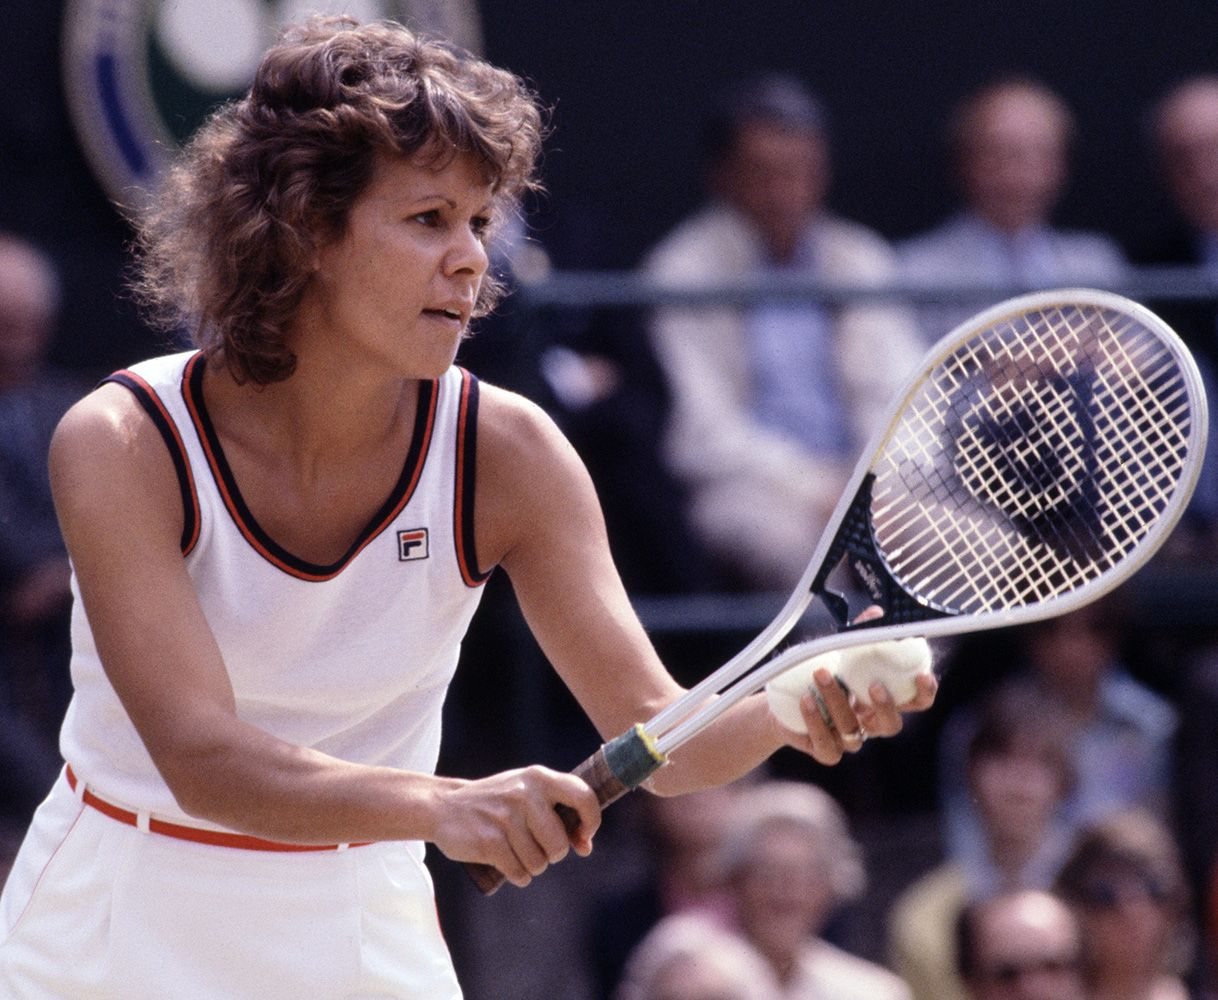 evonne goolagong She is my all time favorite player She was so